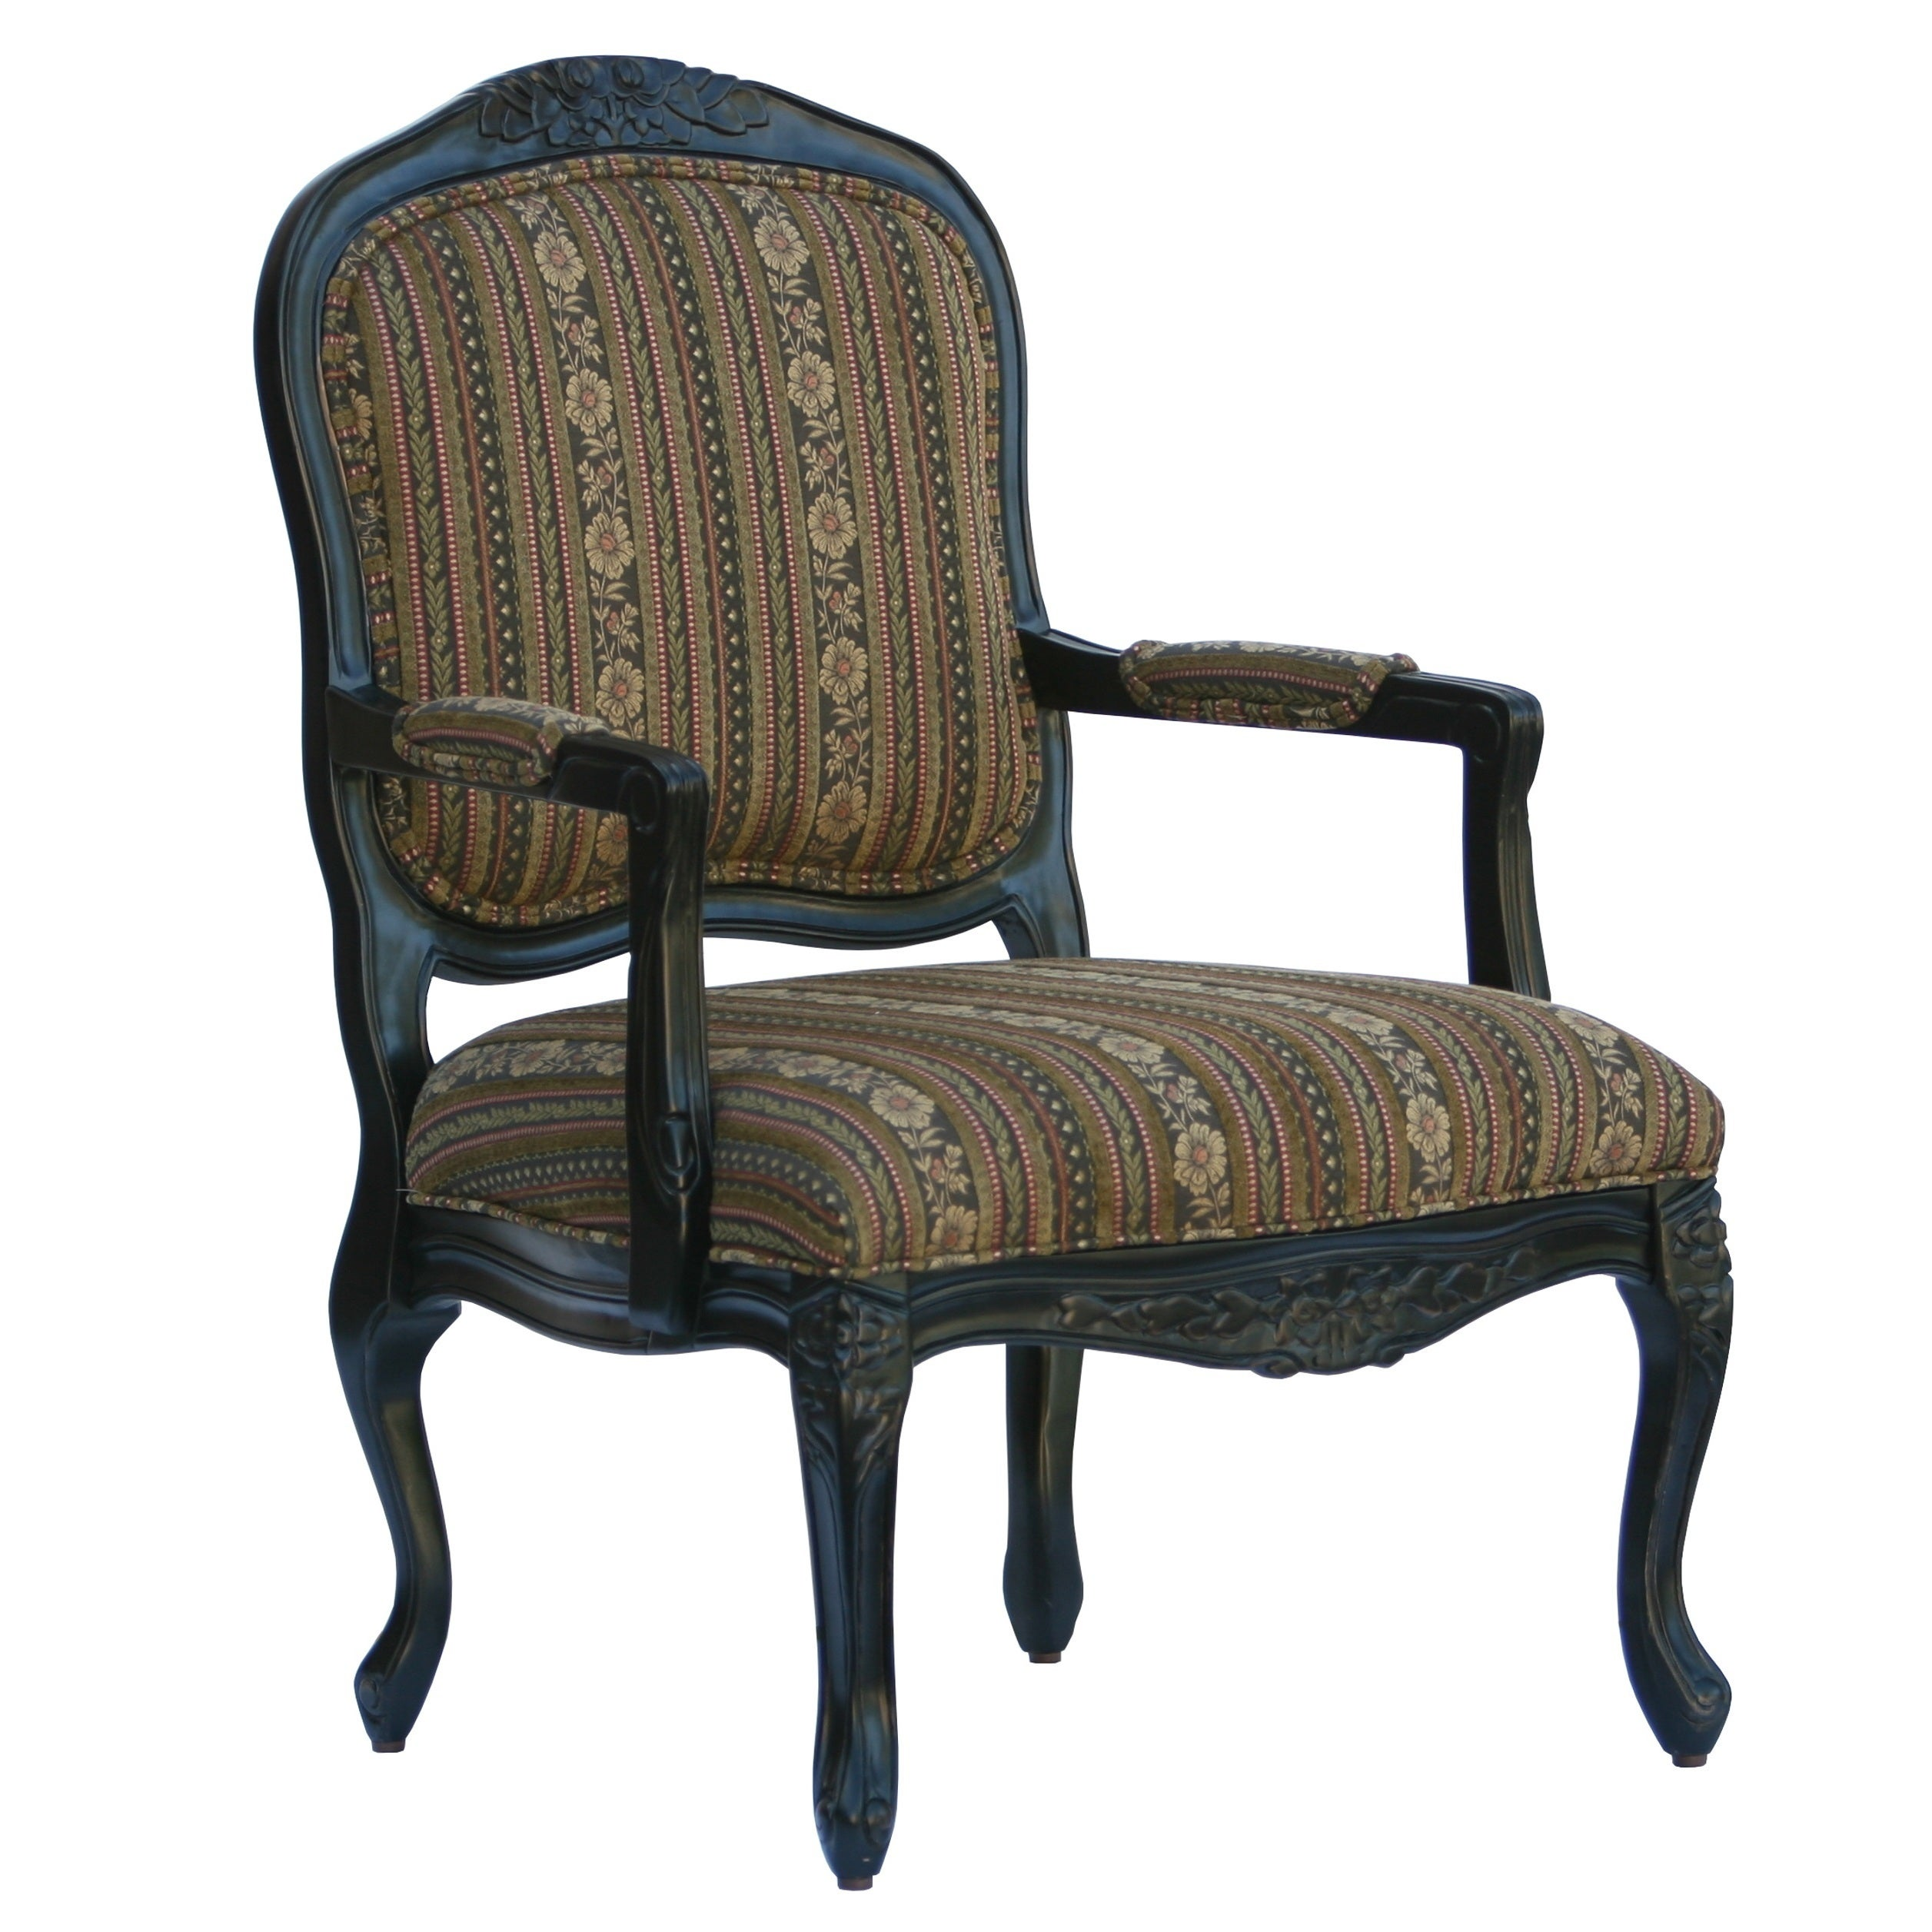 Solace Accent Chair by Greyson Living (Solace Chair), Bla...